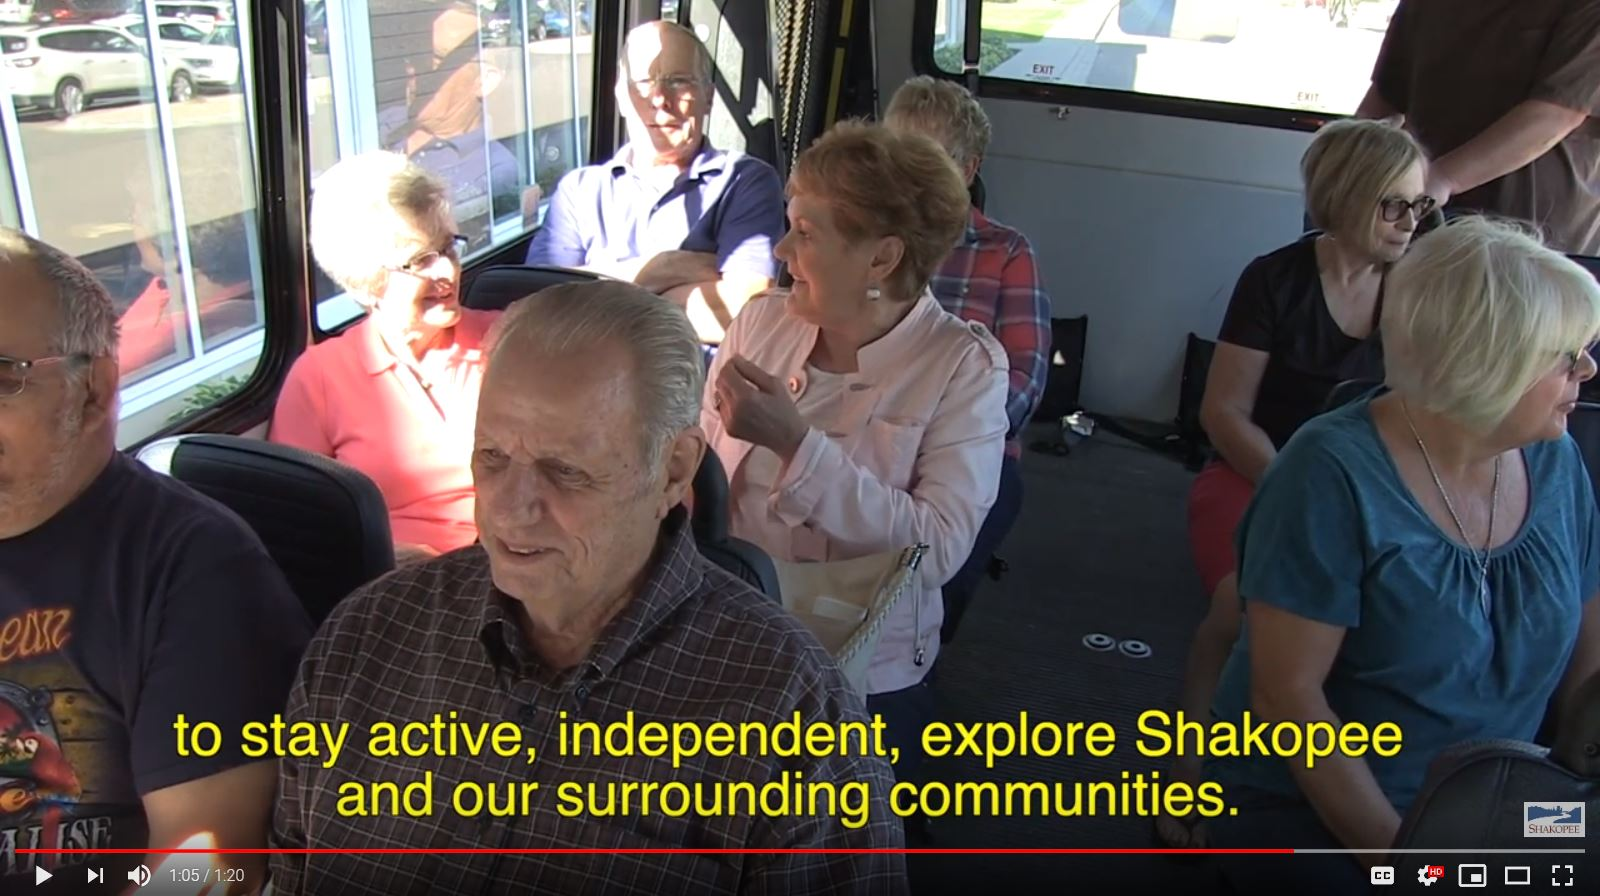 Seniors sitting on bus in video